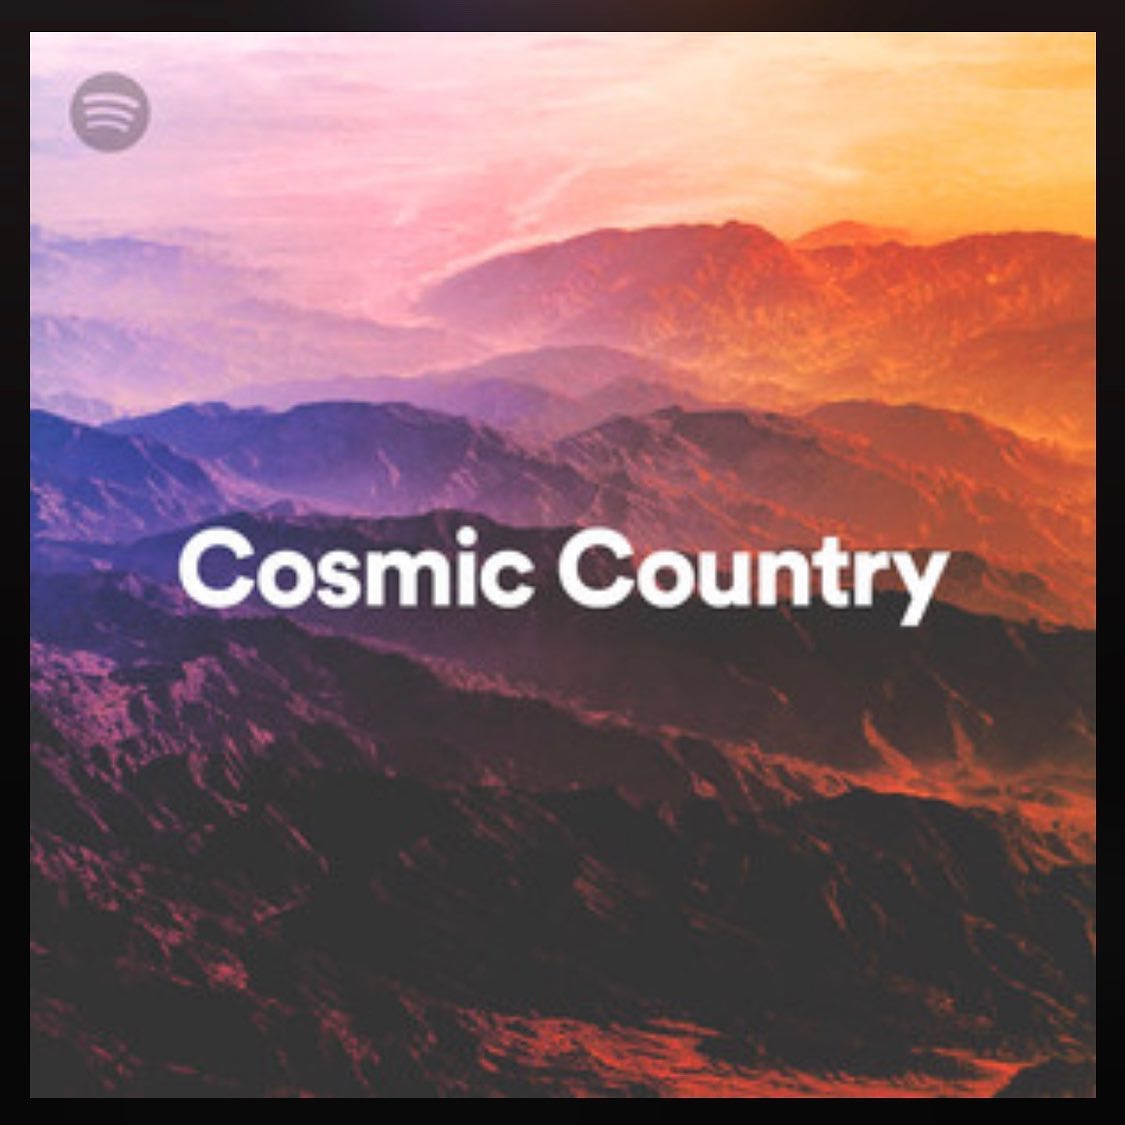 """Jenna's original song """"Angels Among Us"""" was featured on a Spotify curated playlist called """"Cosmic Country""""! Click the picture and follow the playlist featuring Tyler Childers, Nikki Lane, Townes Van Zandt, Gram Parsons, and many more.."""